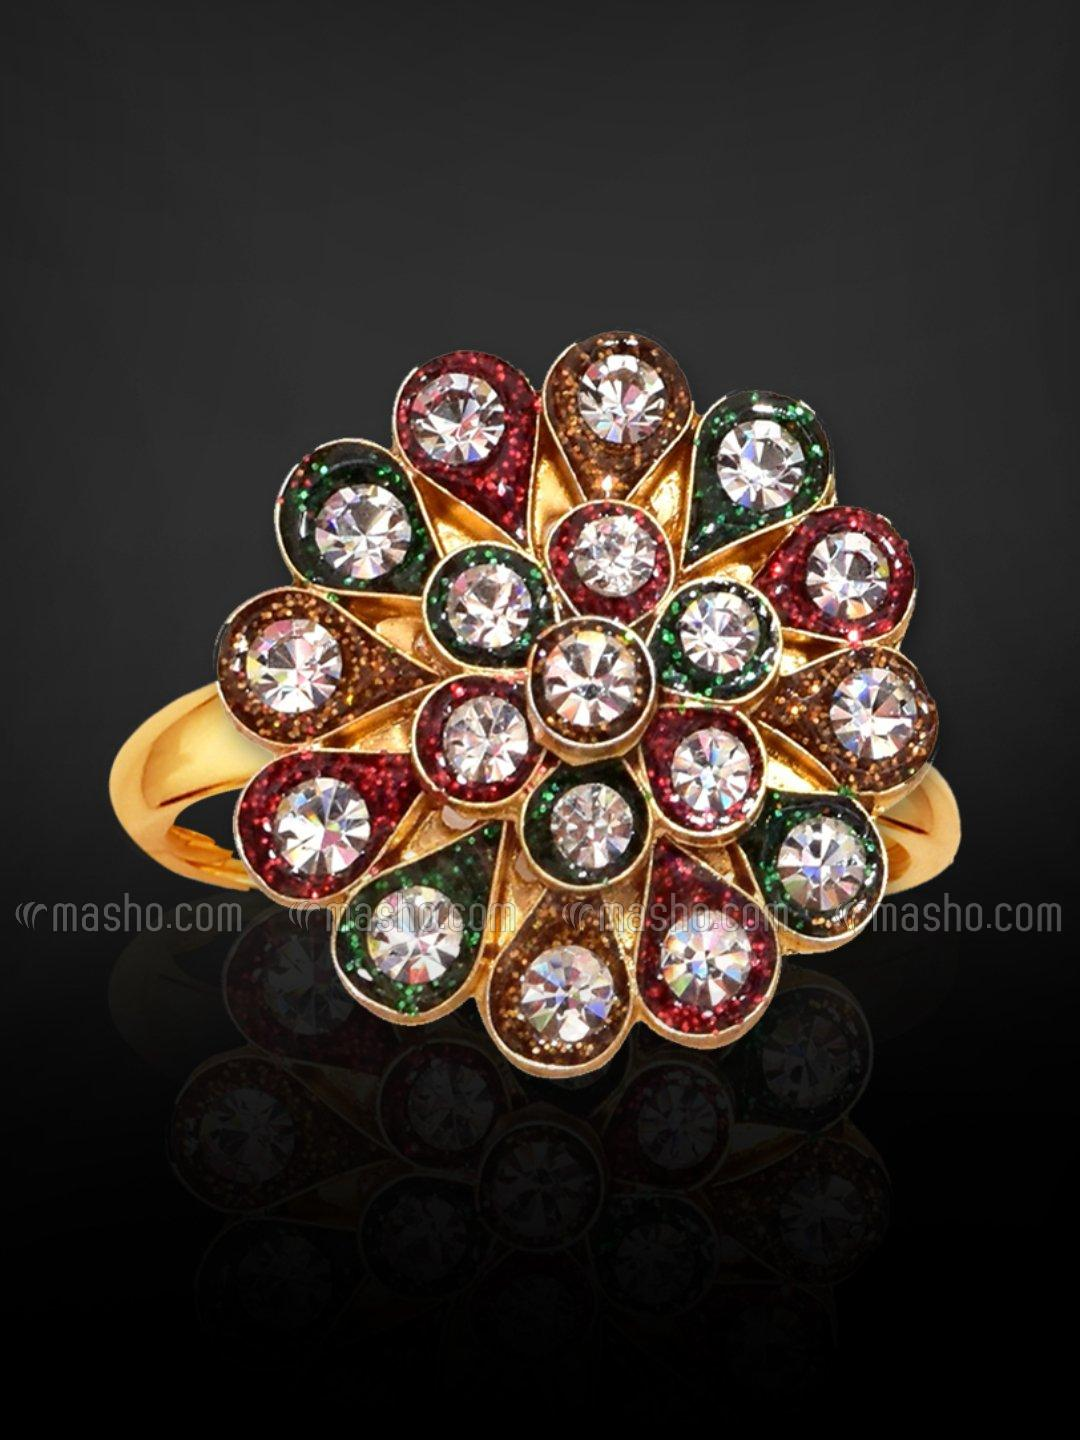 Awadhi Handmade High Quality Brass With Golden Polish Finger Rings In Multi Colour